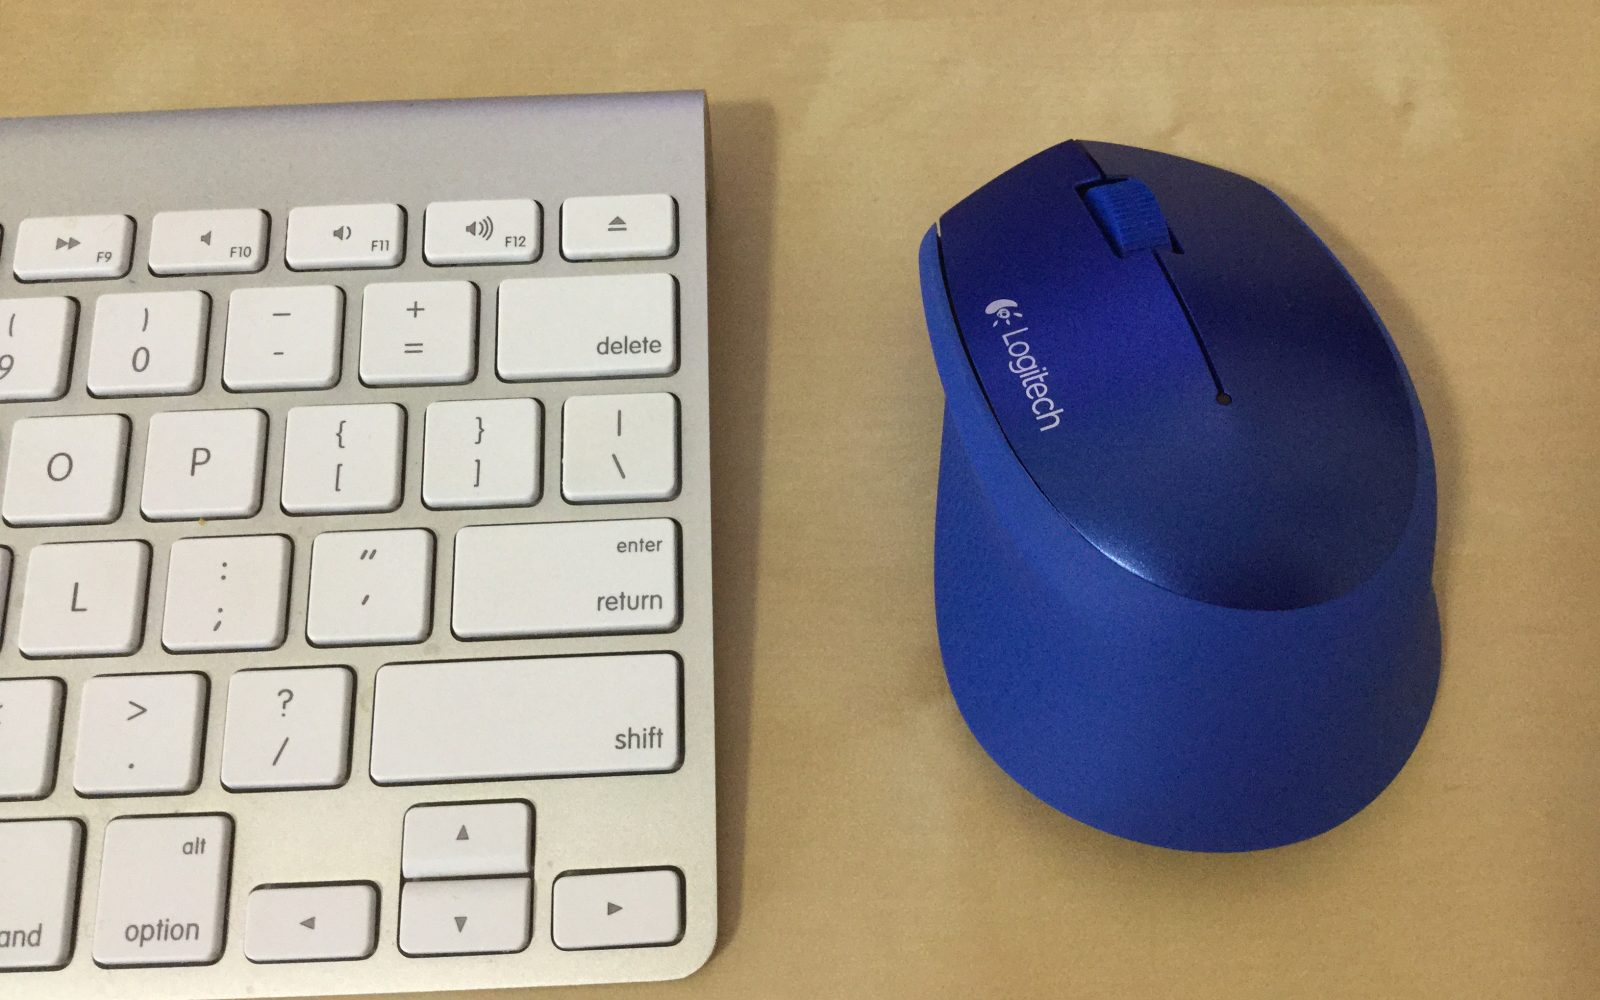 7c9cd0d9a09 Review: Logitech m320 wireless mouse, an ergonomic and affordable solution